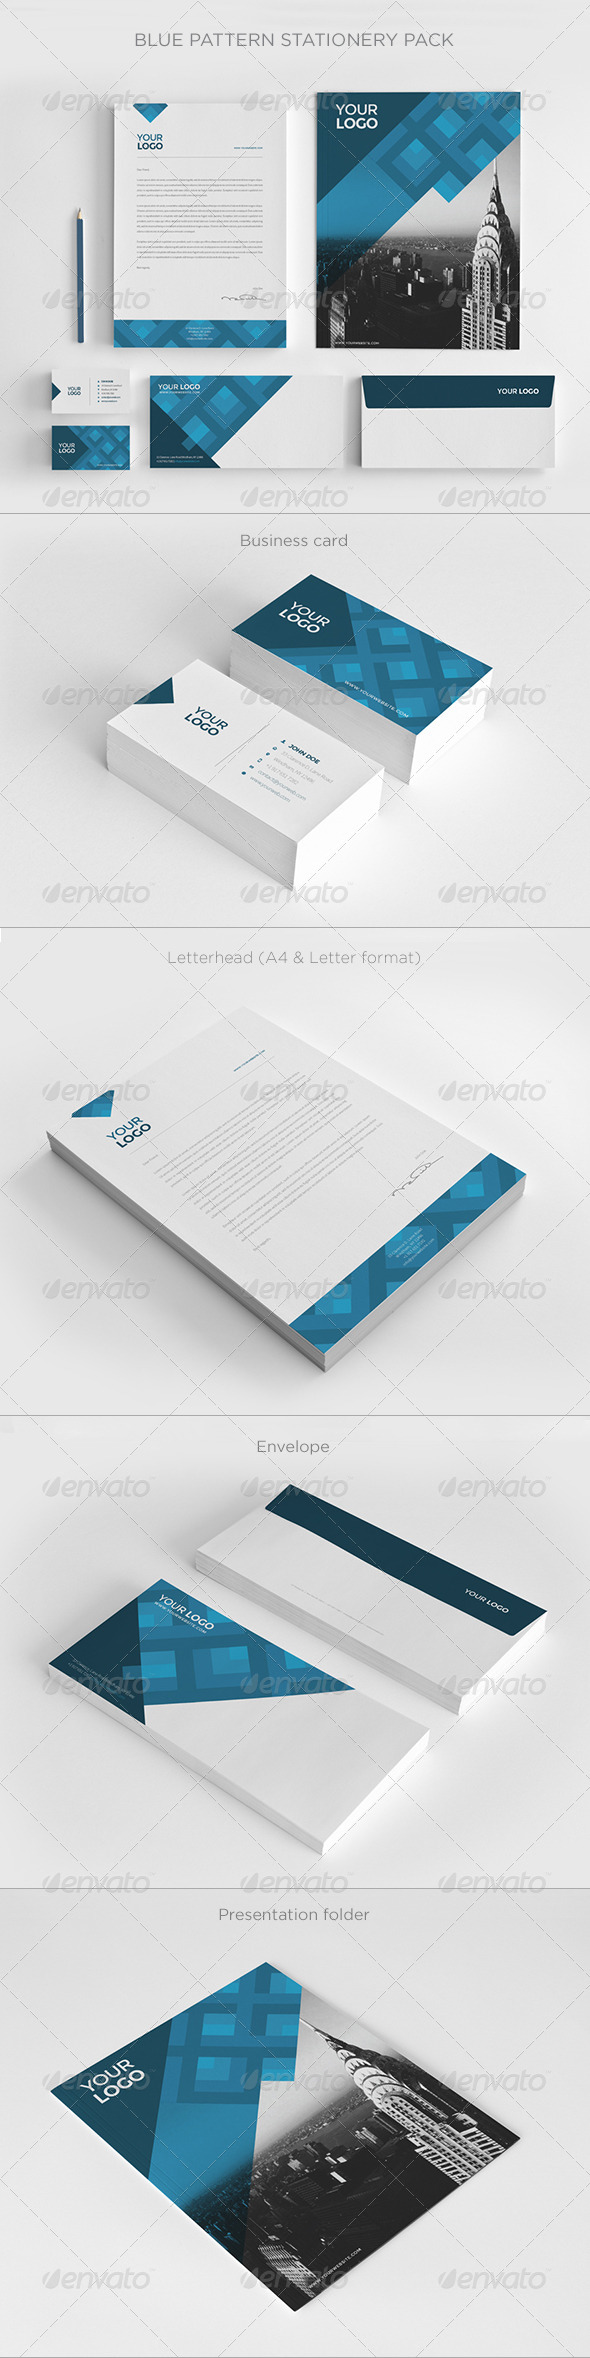 GraphicRiver Blue Pattern Stationery Pack 7867560